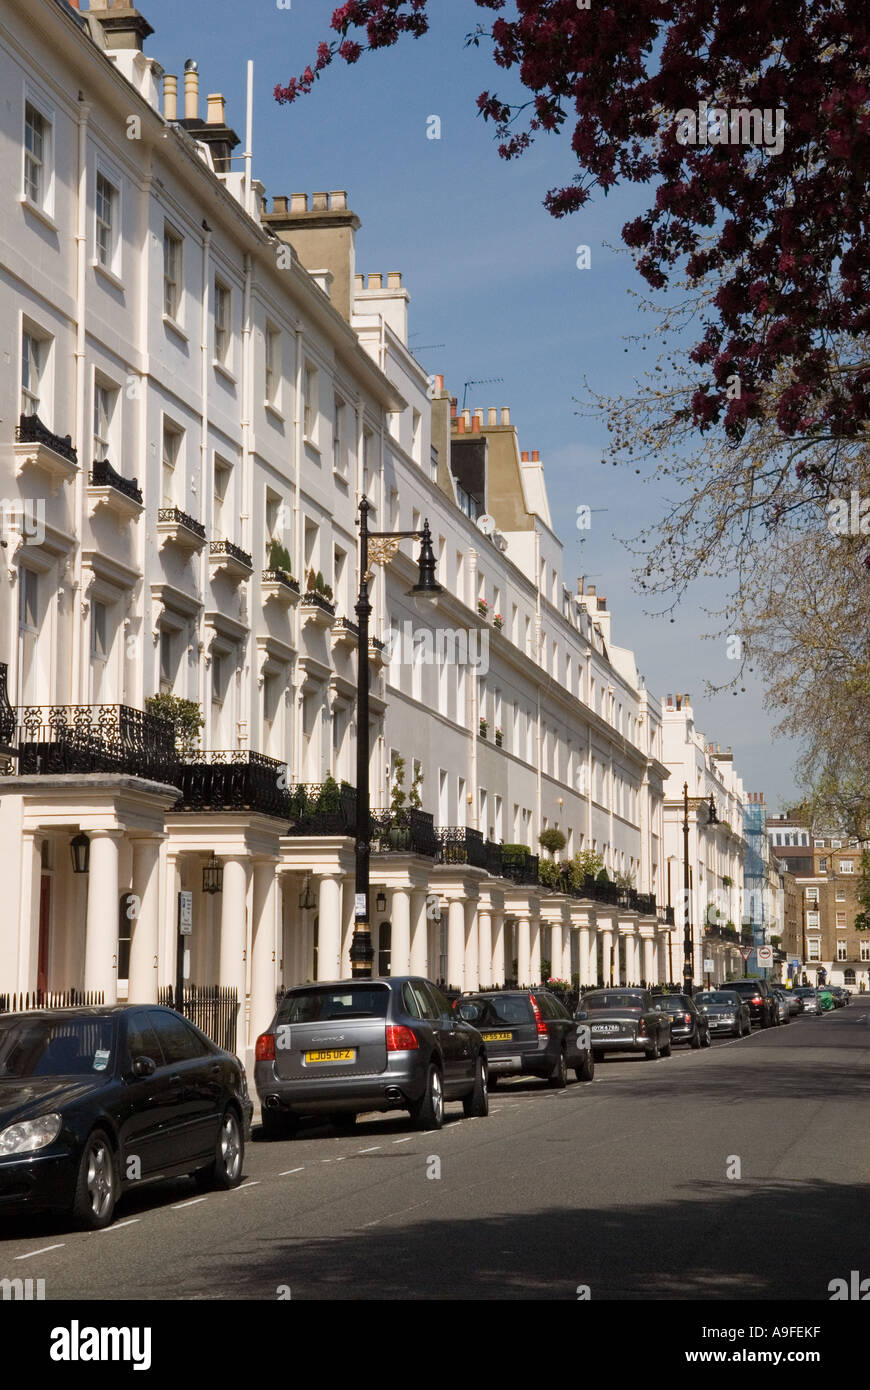 Chester square, Belgravia. City of Westminster. London SW1. England.  HOMER SYKES - Stock Image